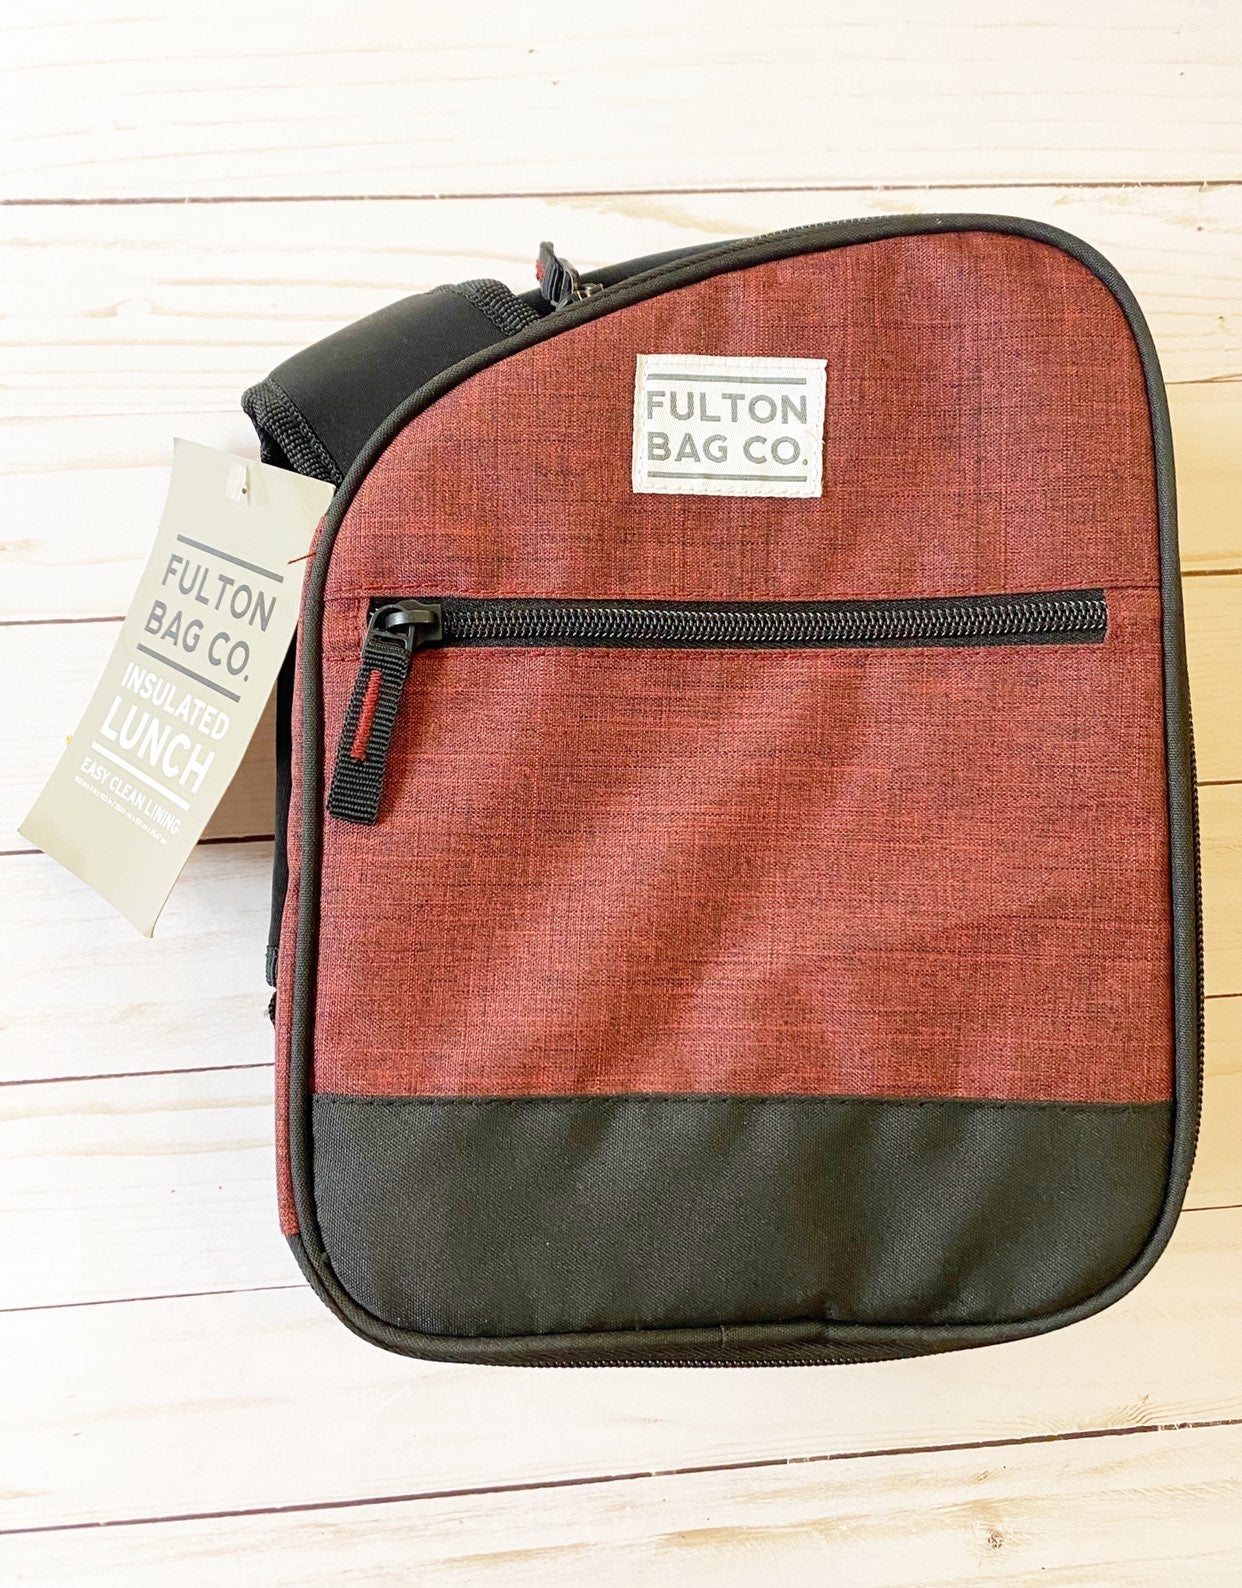 Fulton Bag Co. Insulated Lunch